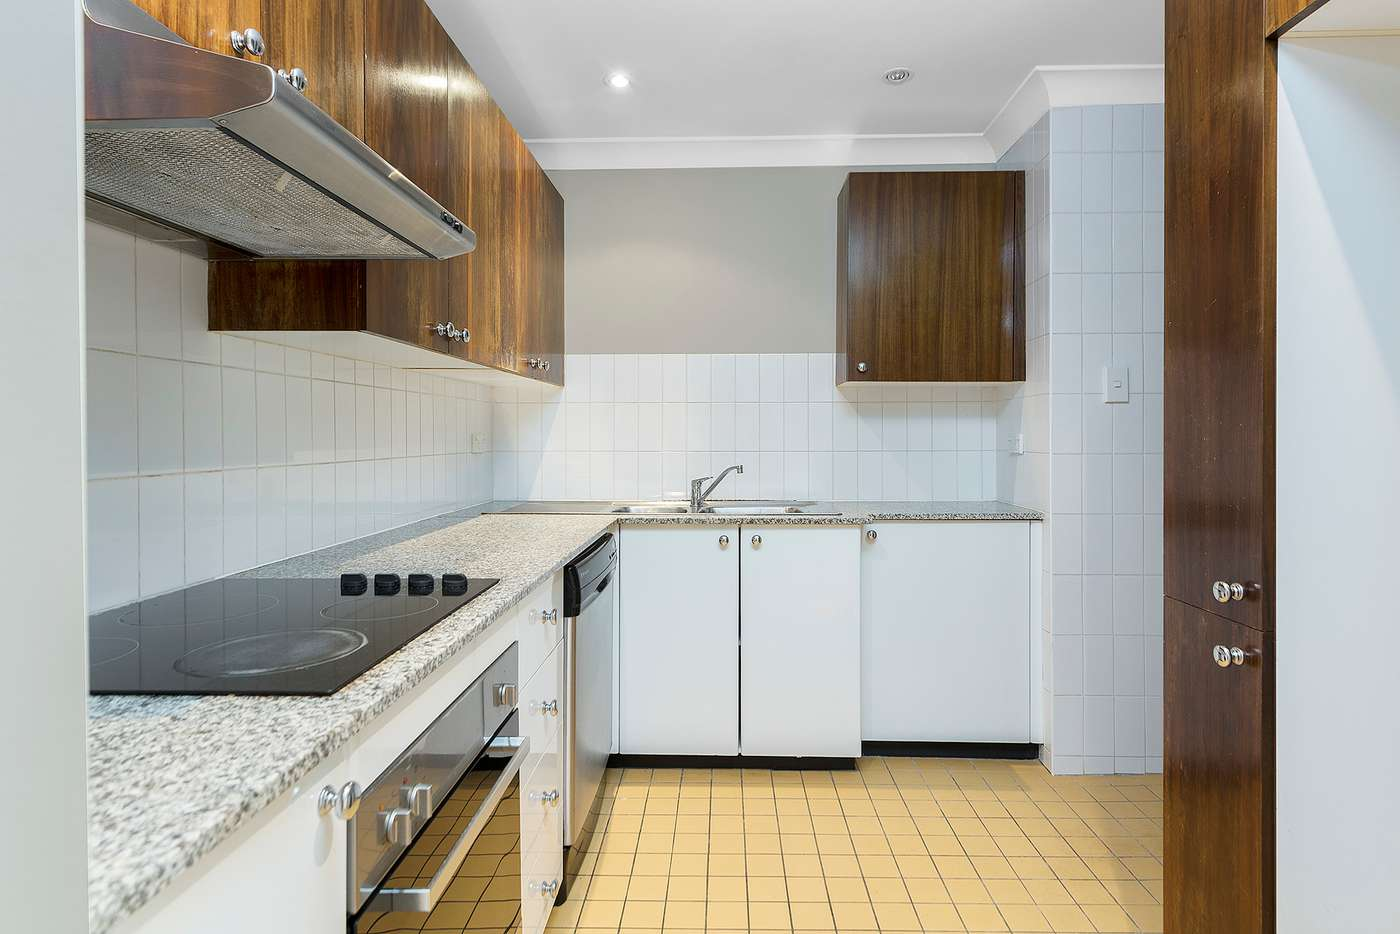 Main view of Homely unit listing, 10/13-17 Cope Street, Redfern NSW 2016